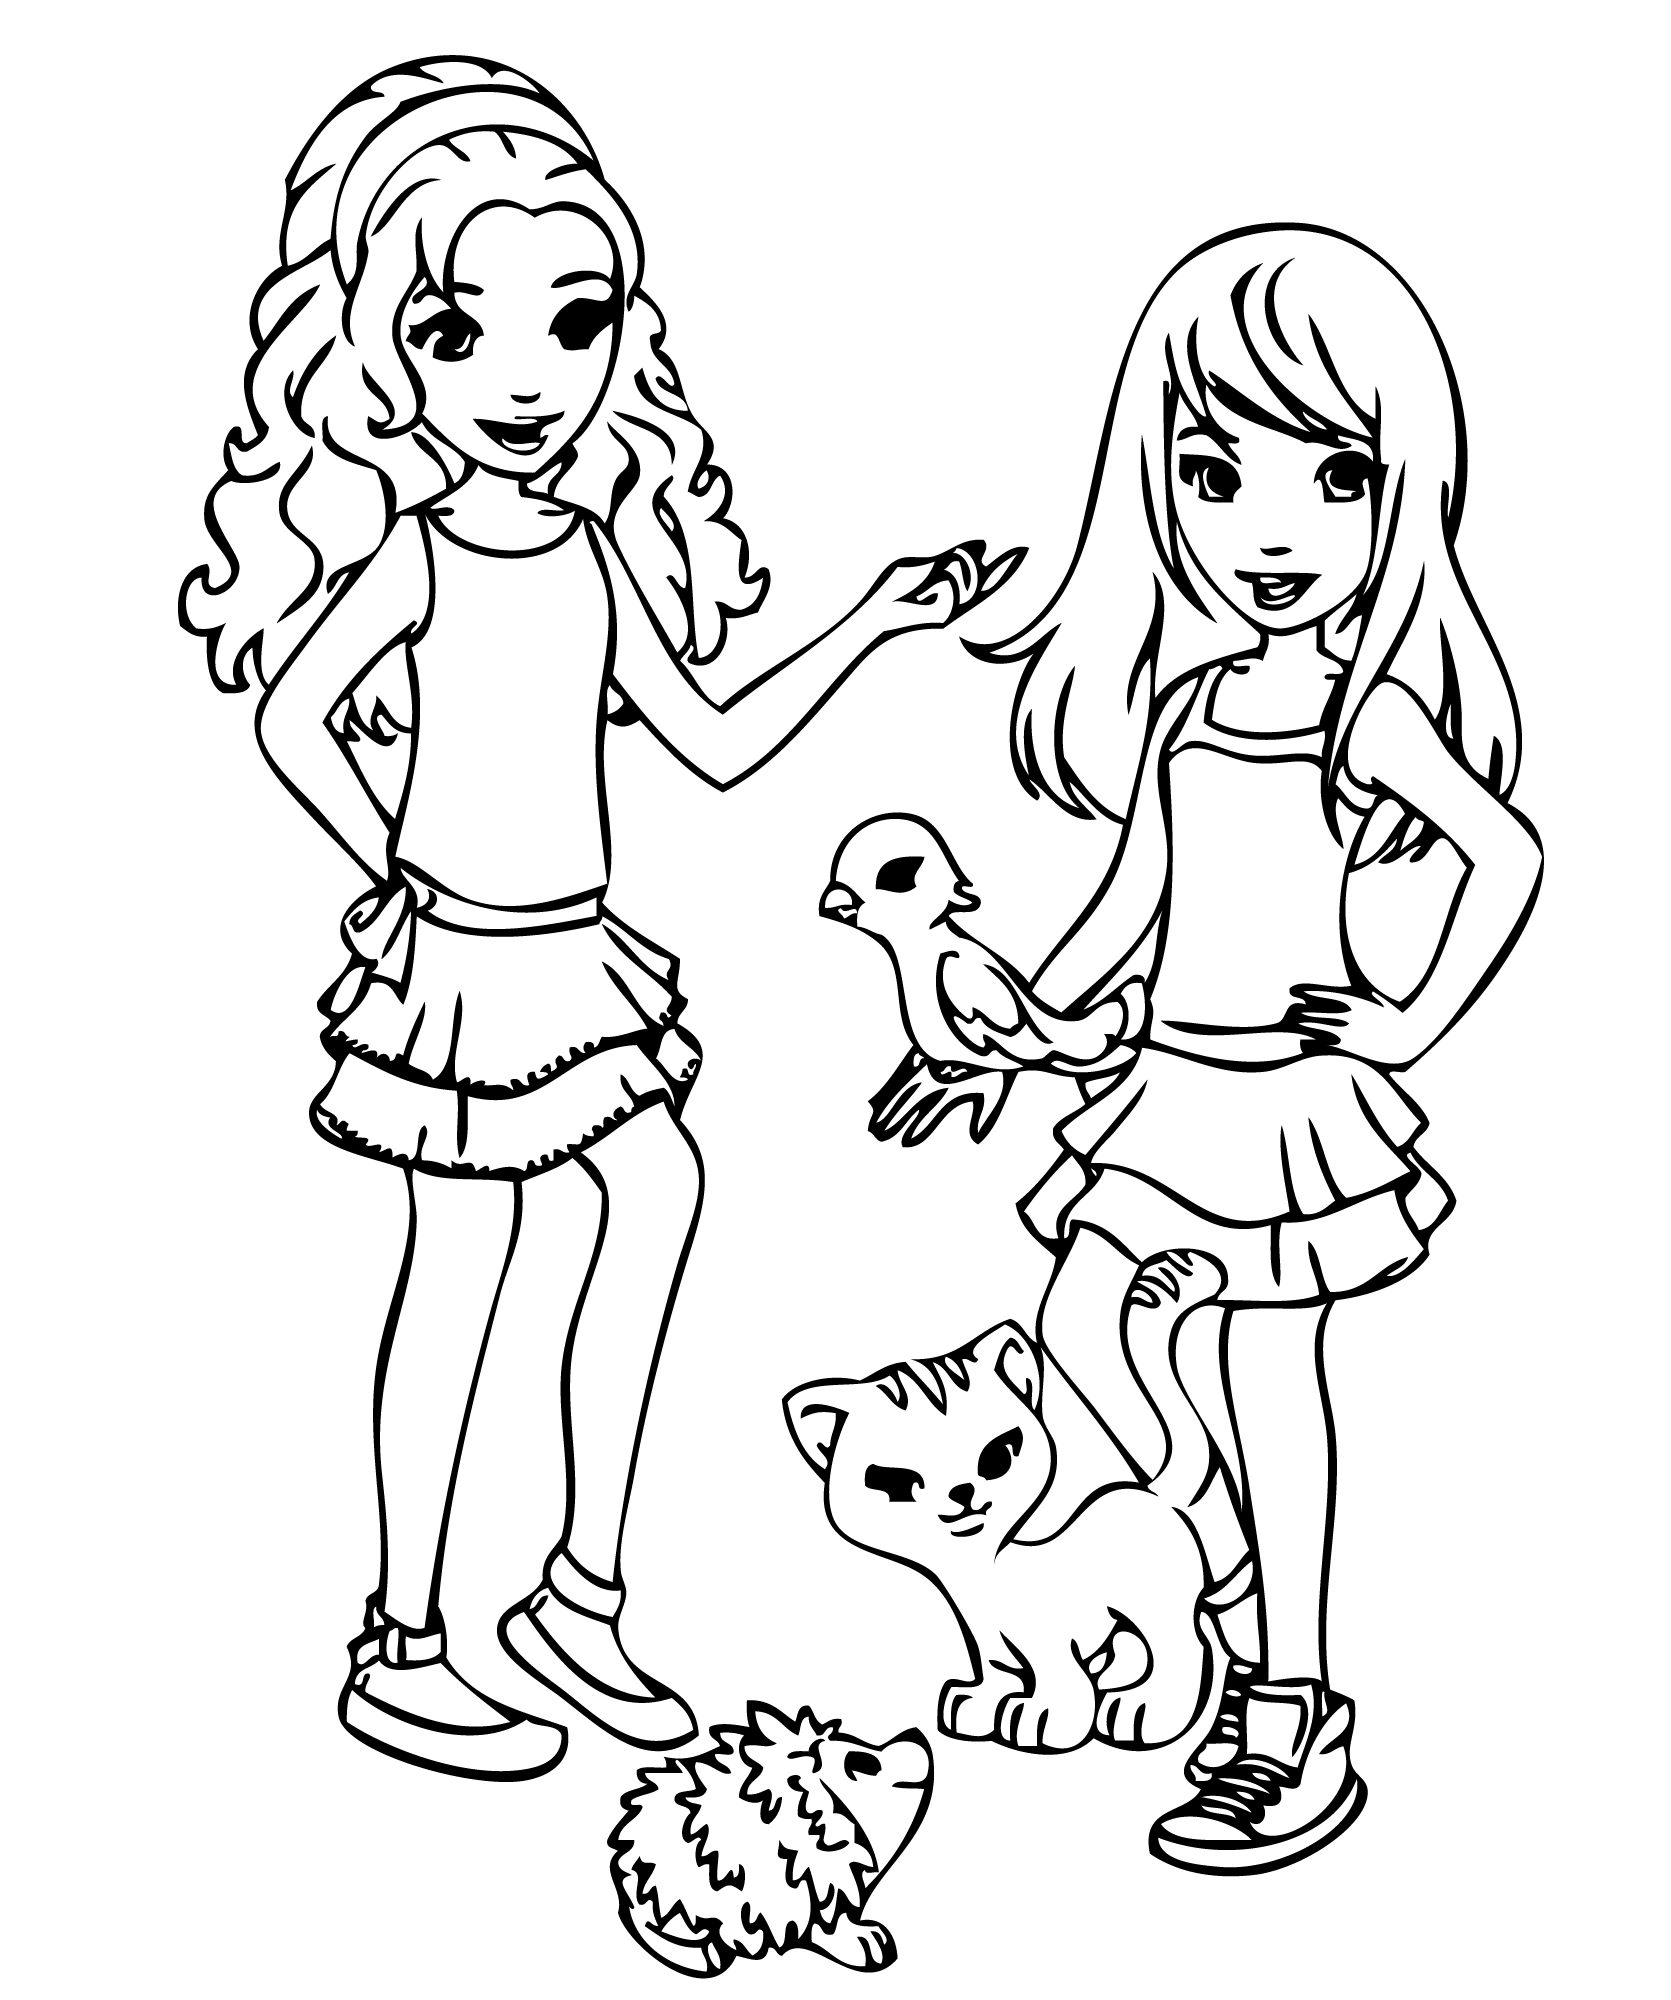 1671x2000 Lego Friends Coloring Pages